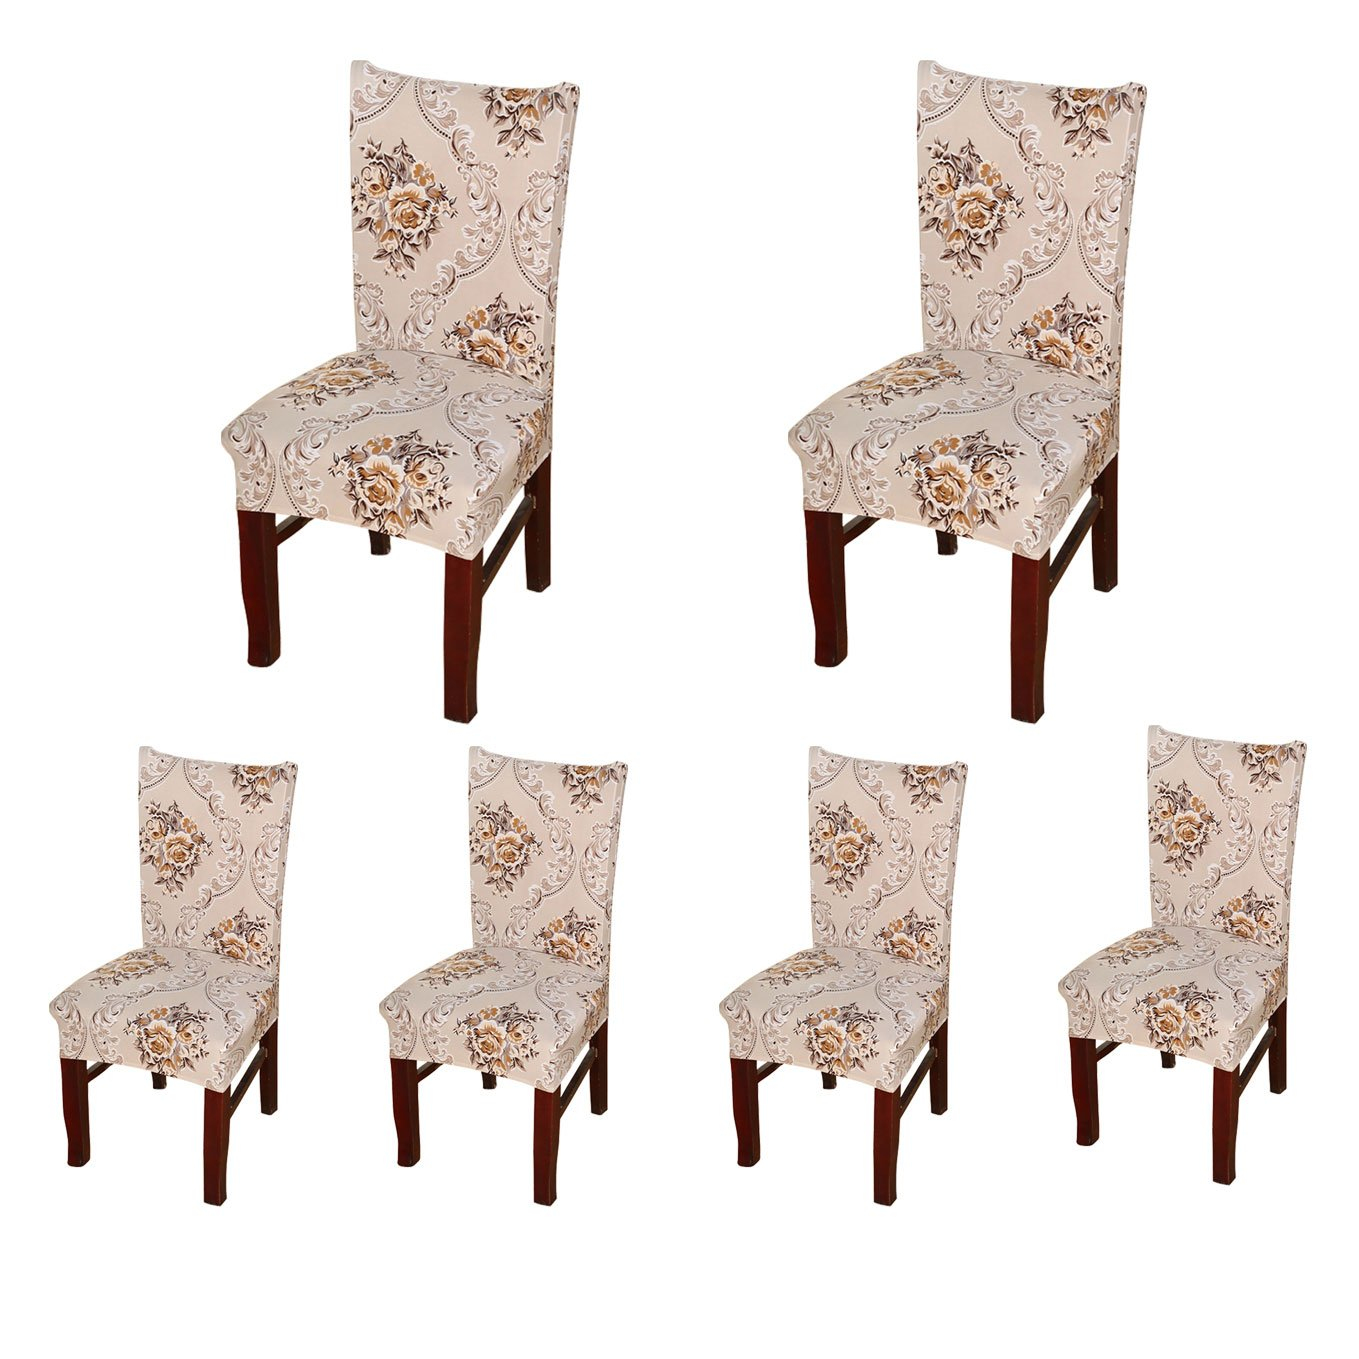 SoulFeel 6 x Soft Spandex Fit Stretch Short Dining Room Chair Covers with Printed Pattern, Banquet Chair Seat Protector Slipcover for Home Party Hotel Wedding Ceremony (Style 22)